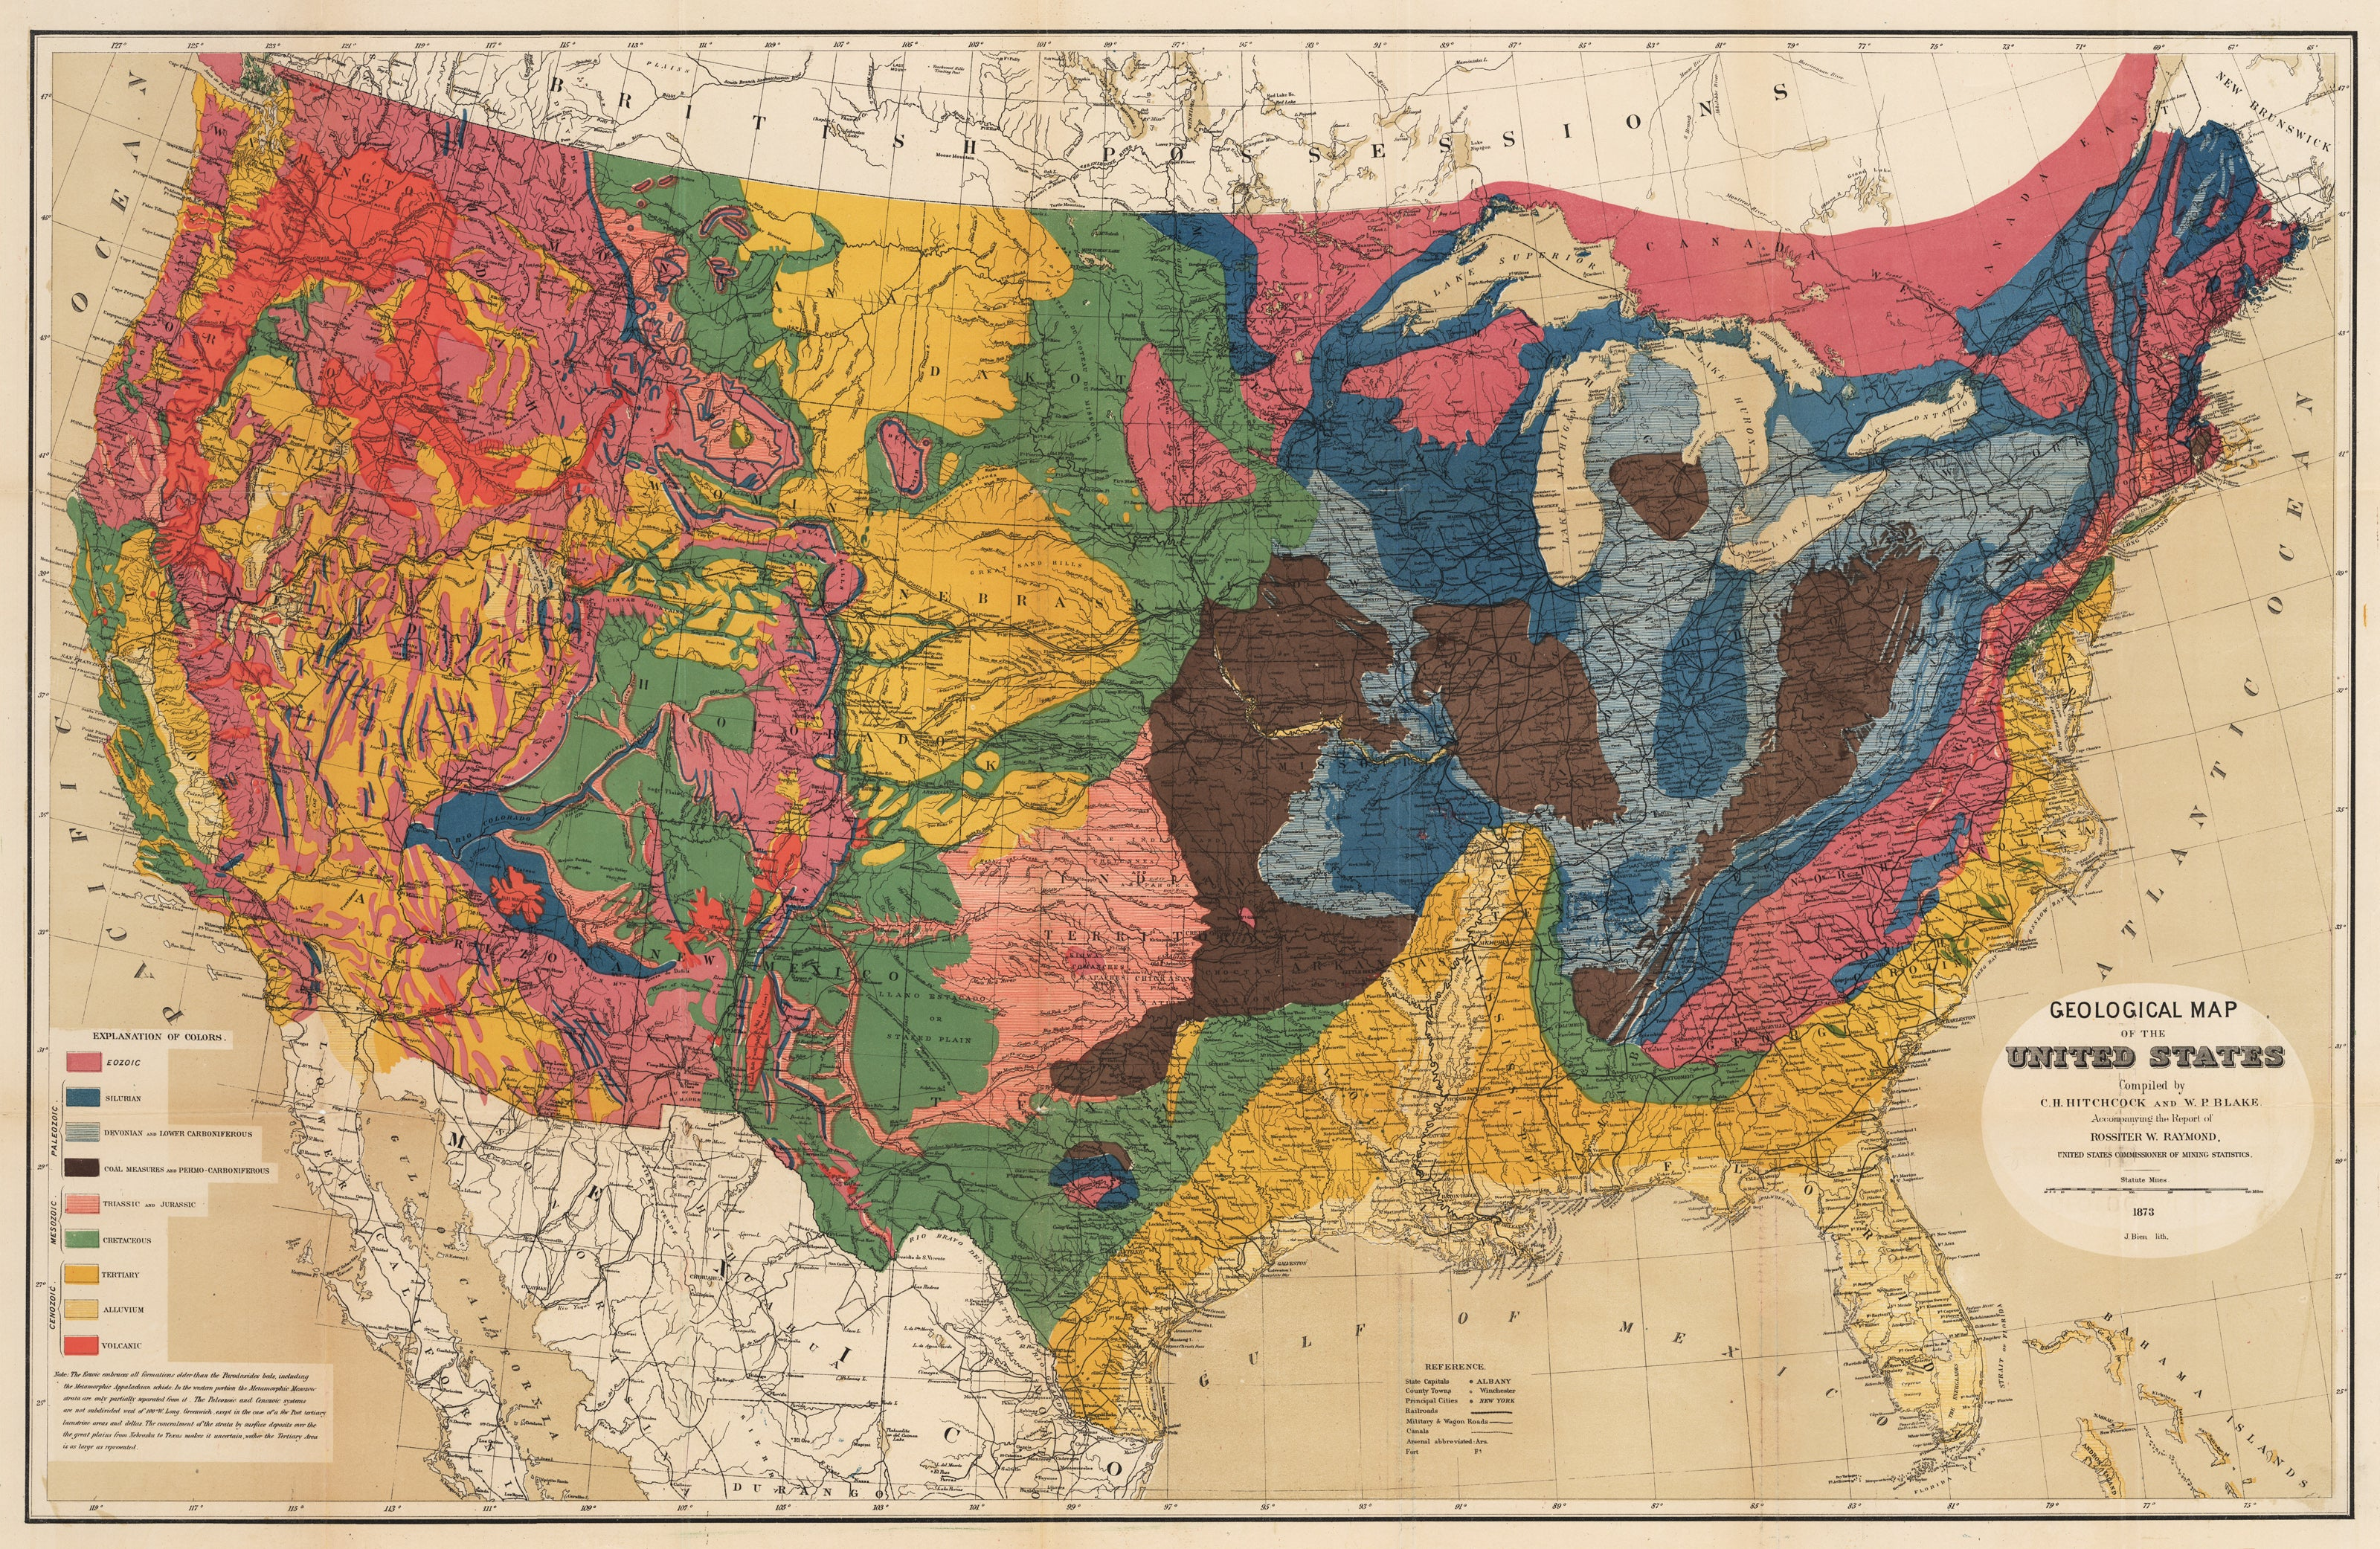 Geological Map Of The United States Compiled By C H Hitchcock 1873